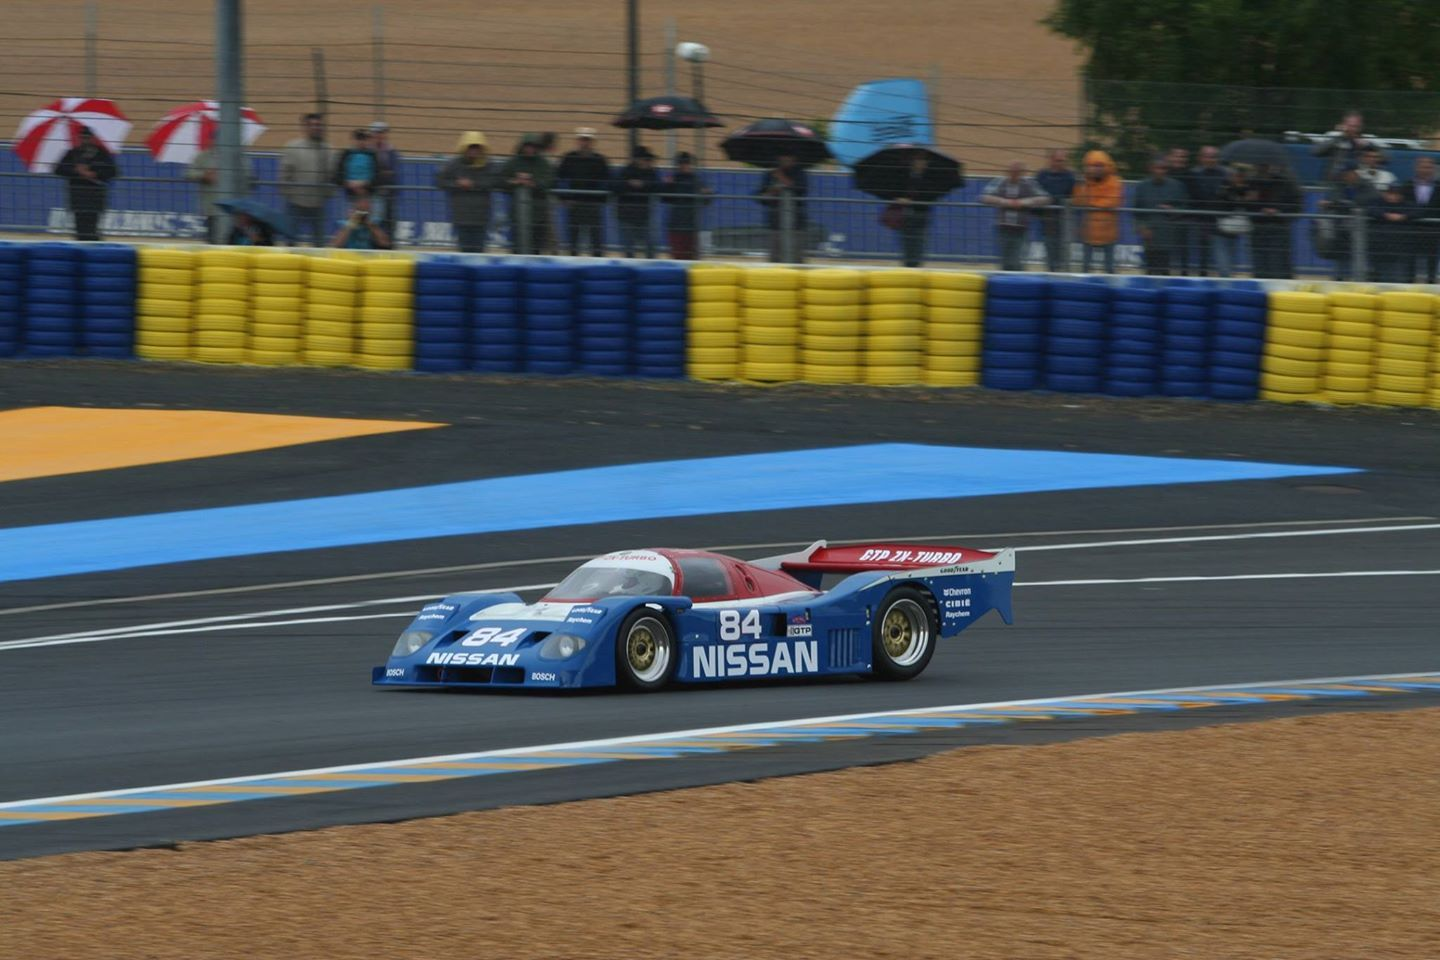 The 1990 Nissan NPT1 90 GTP Le Mans 2008. Group C Support